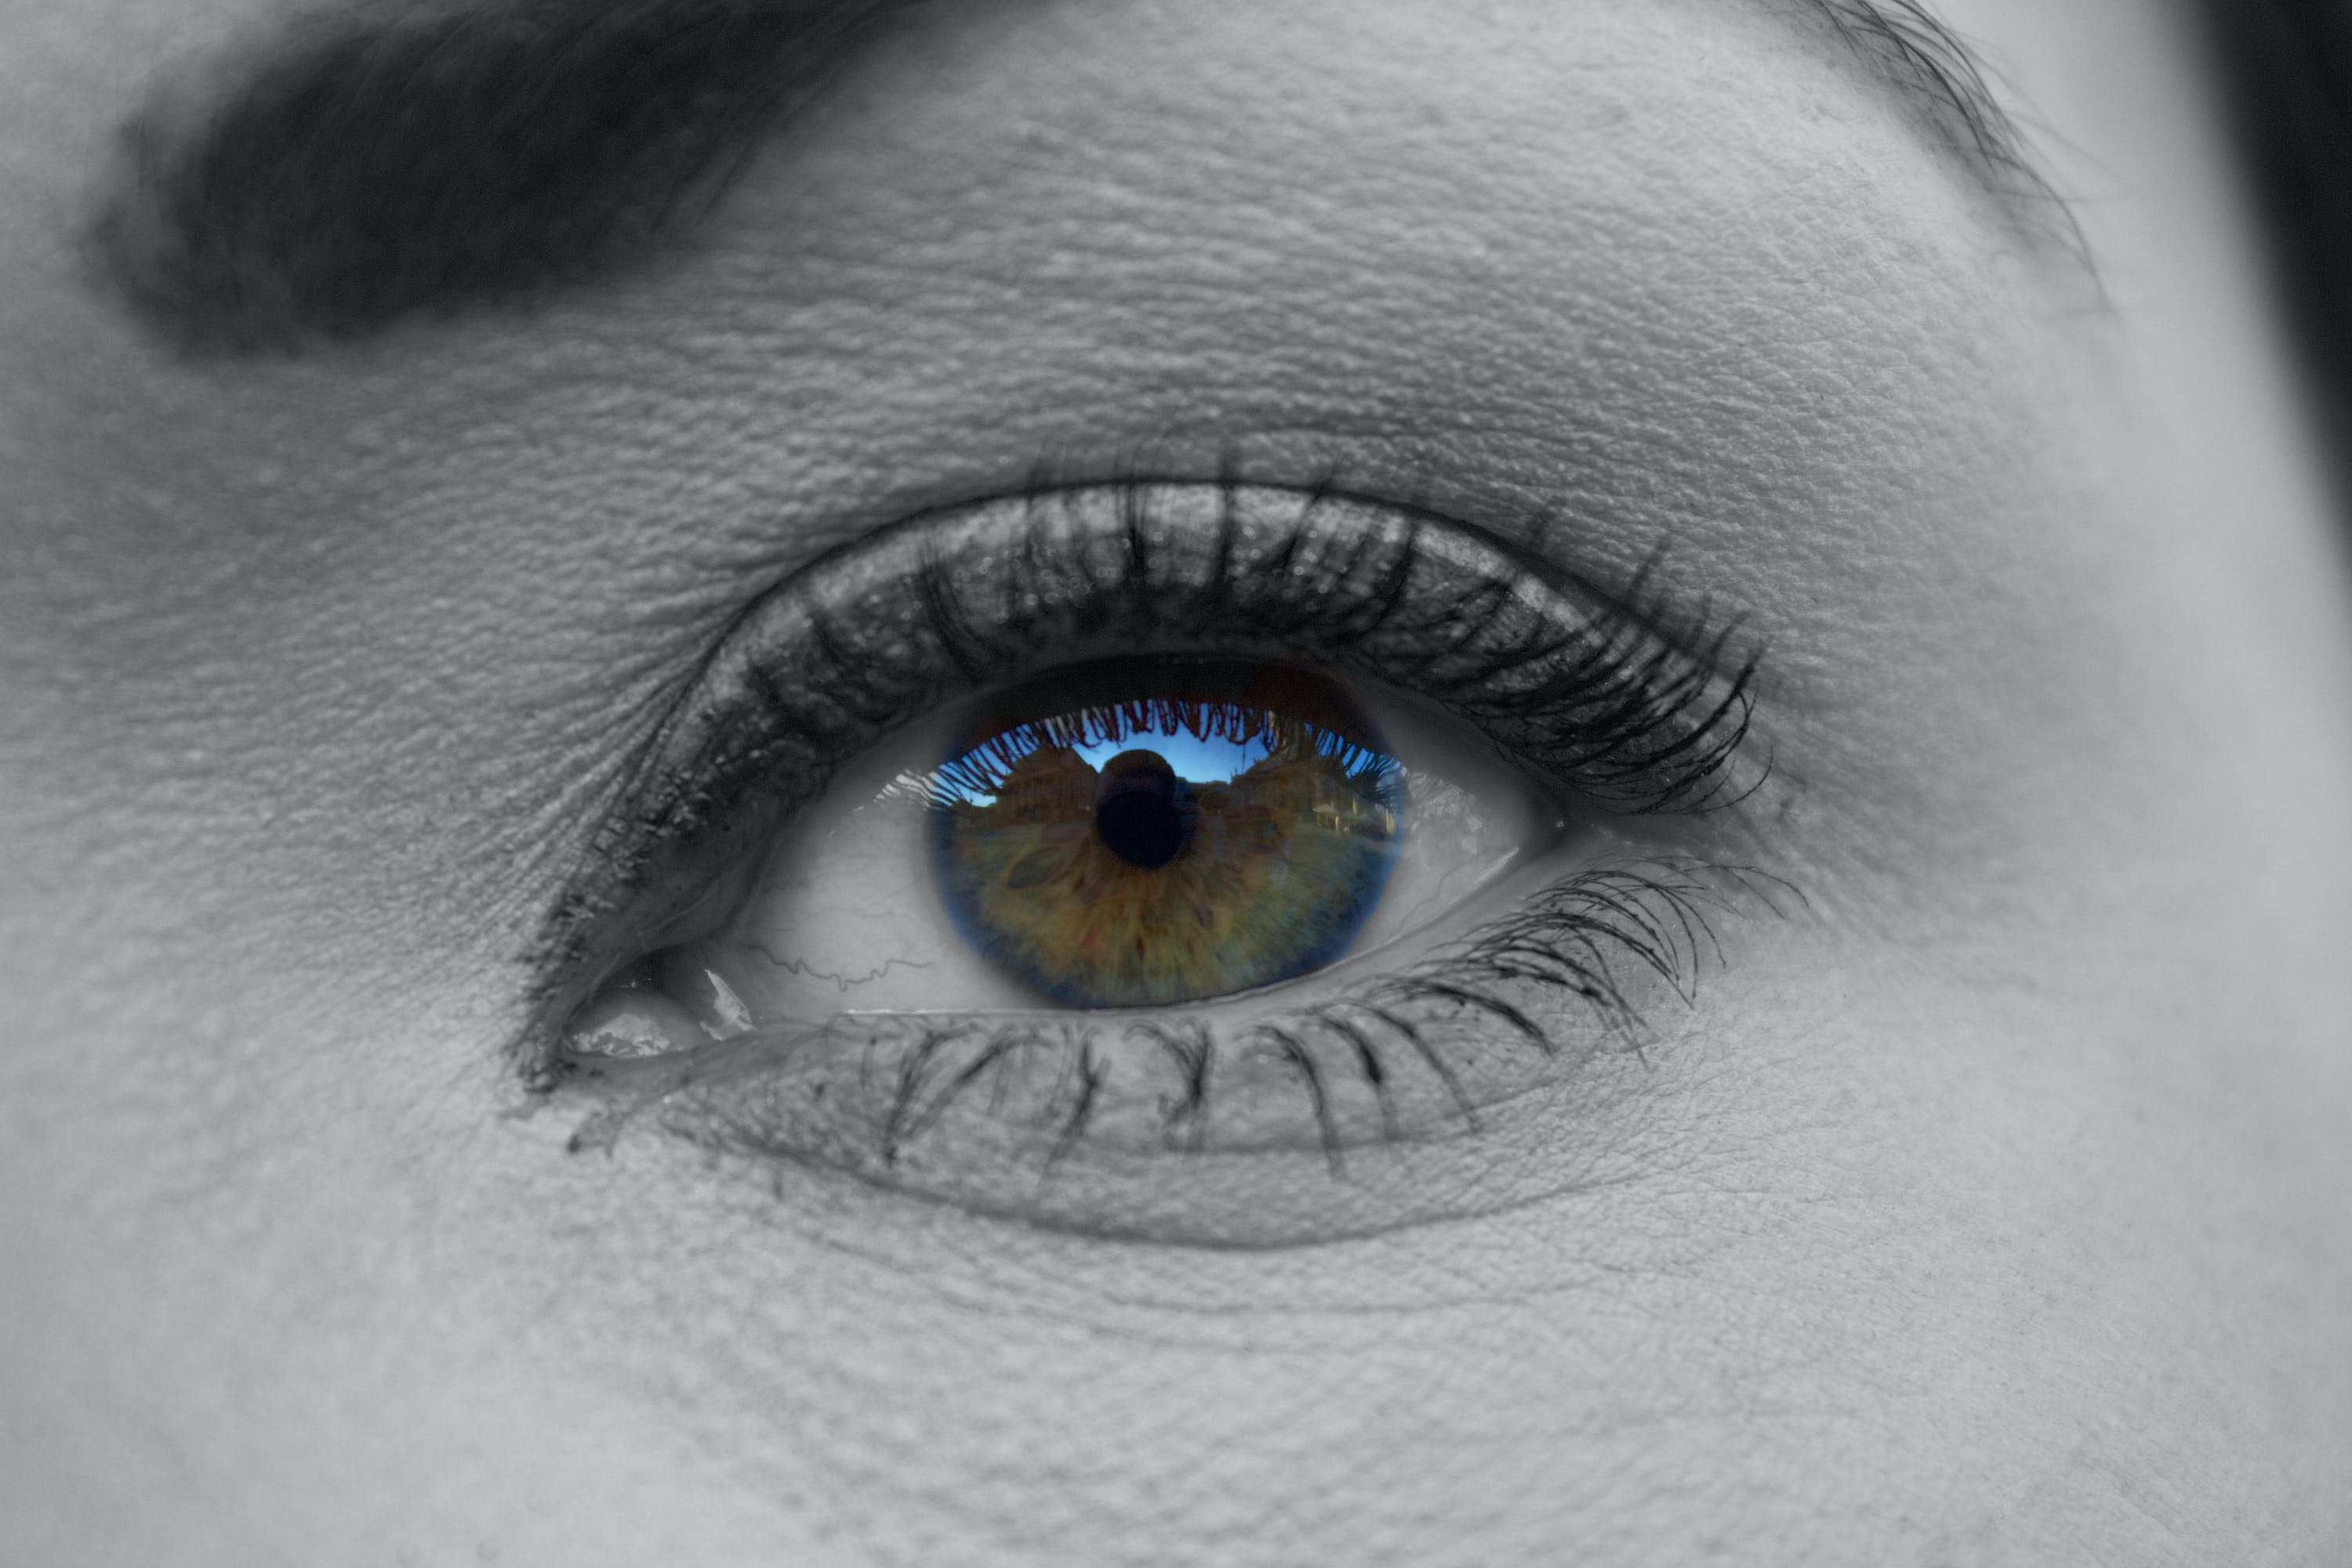 Grayscale Photography of Woman's Eye